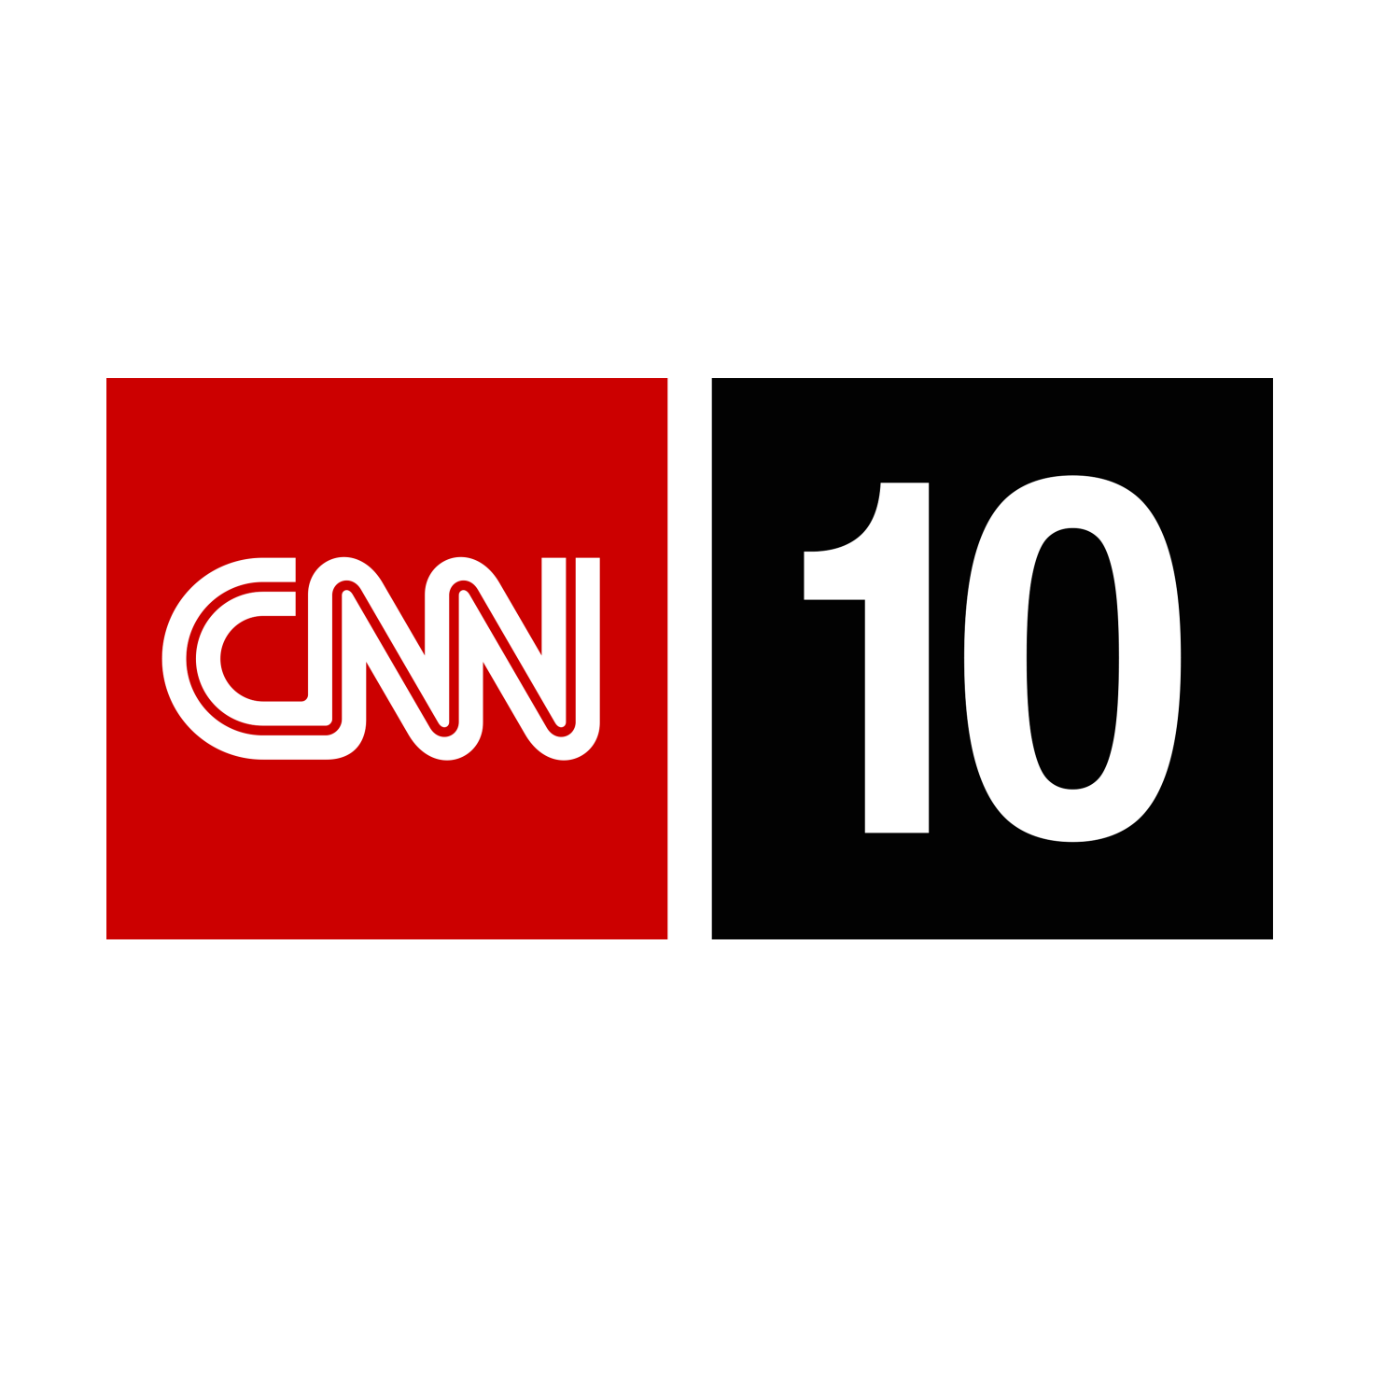 CNN Student News - September 20, 2012